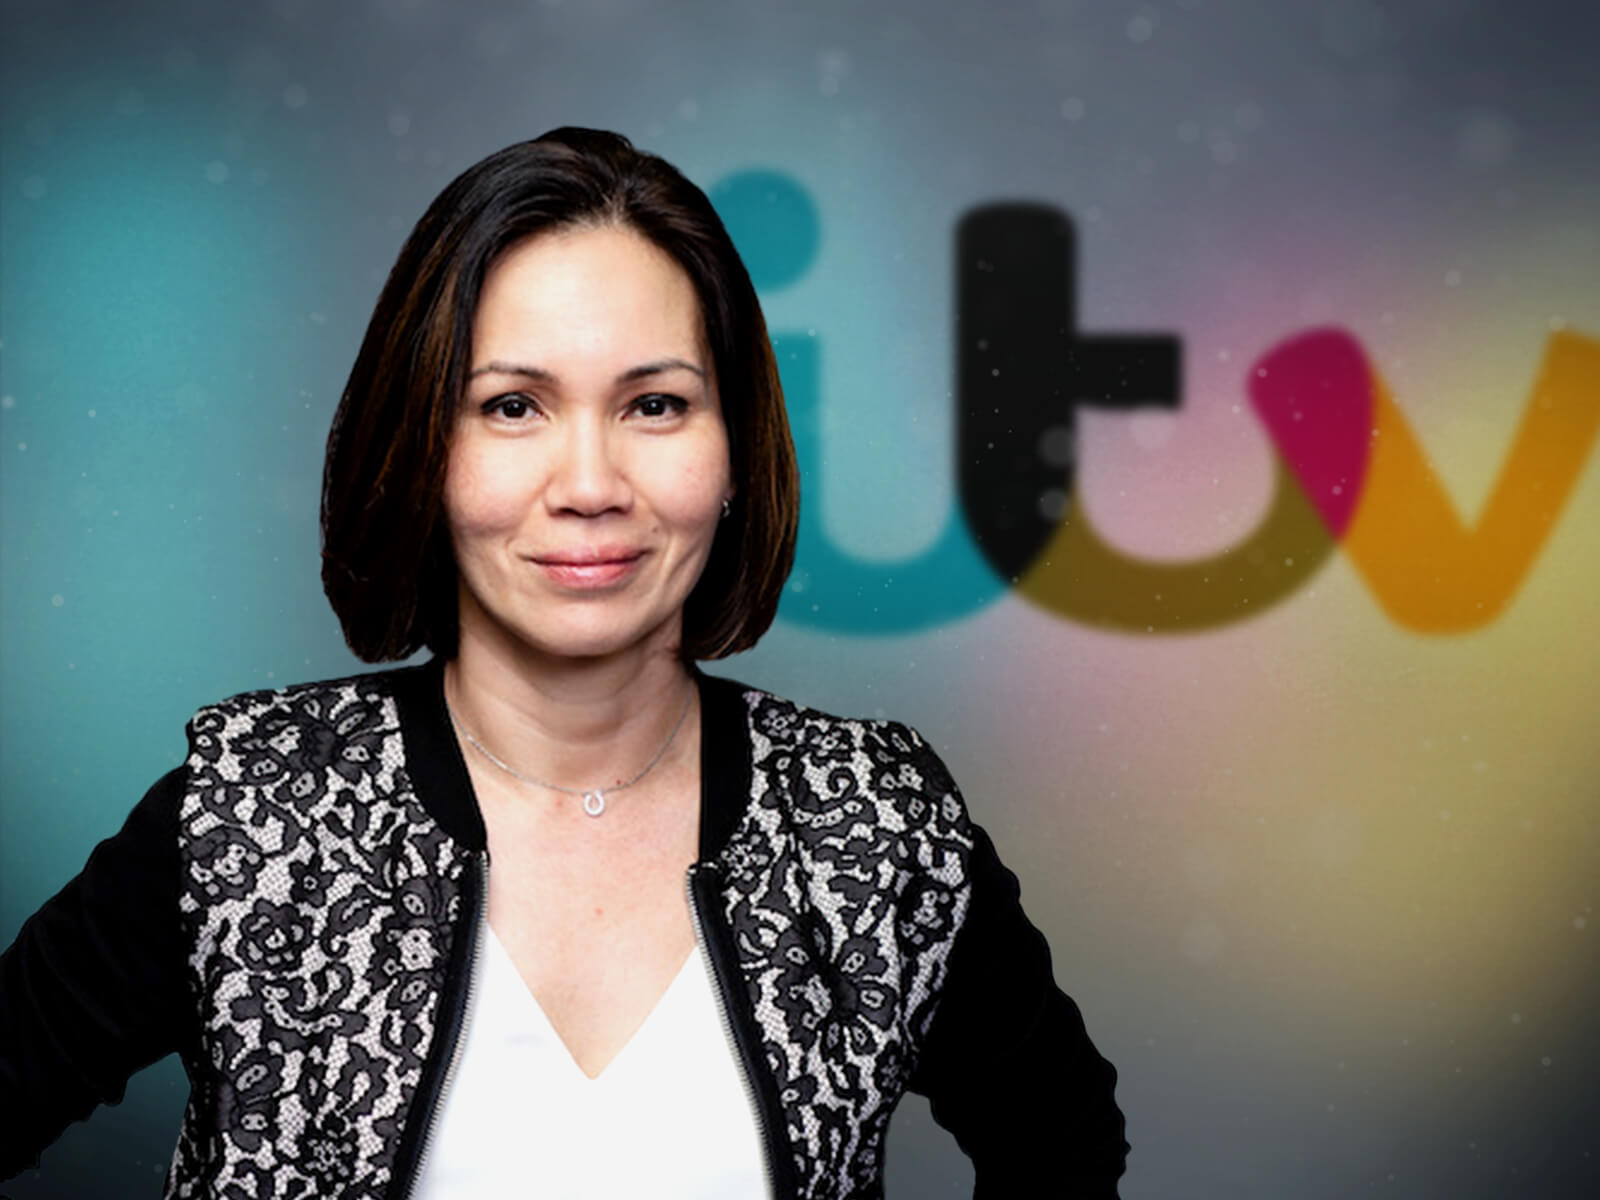 Inside ITV's first-party data strategy